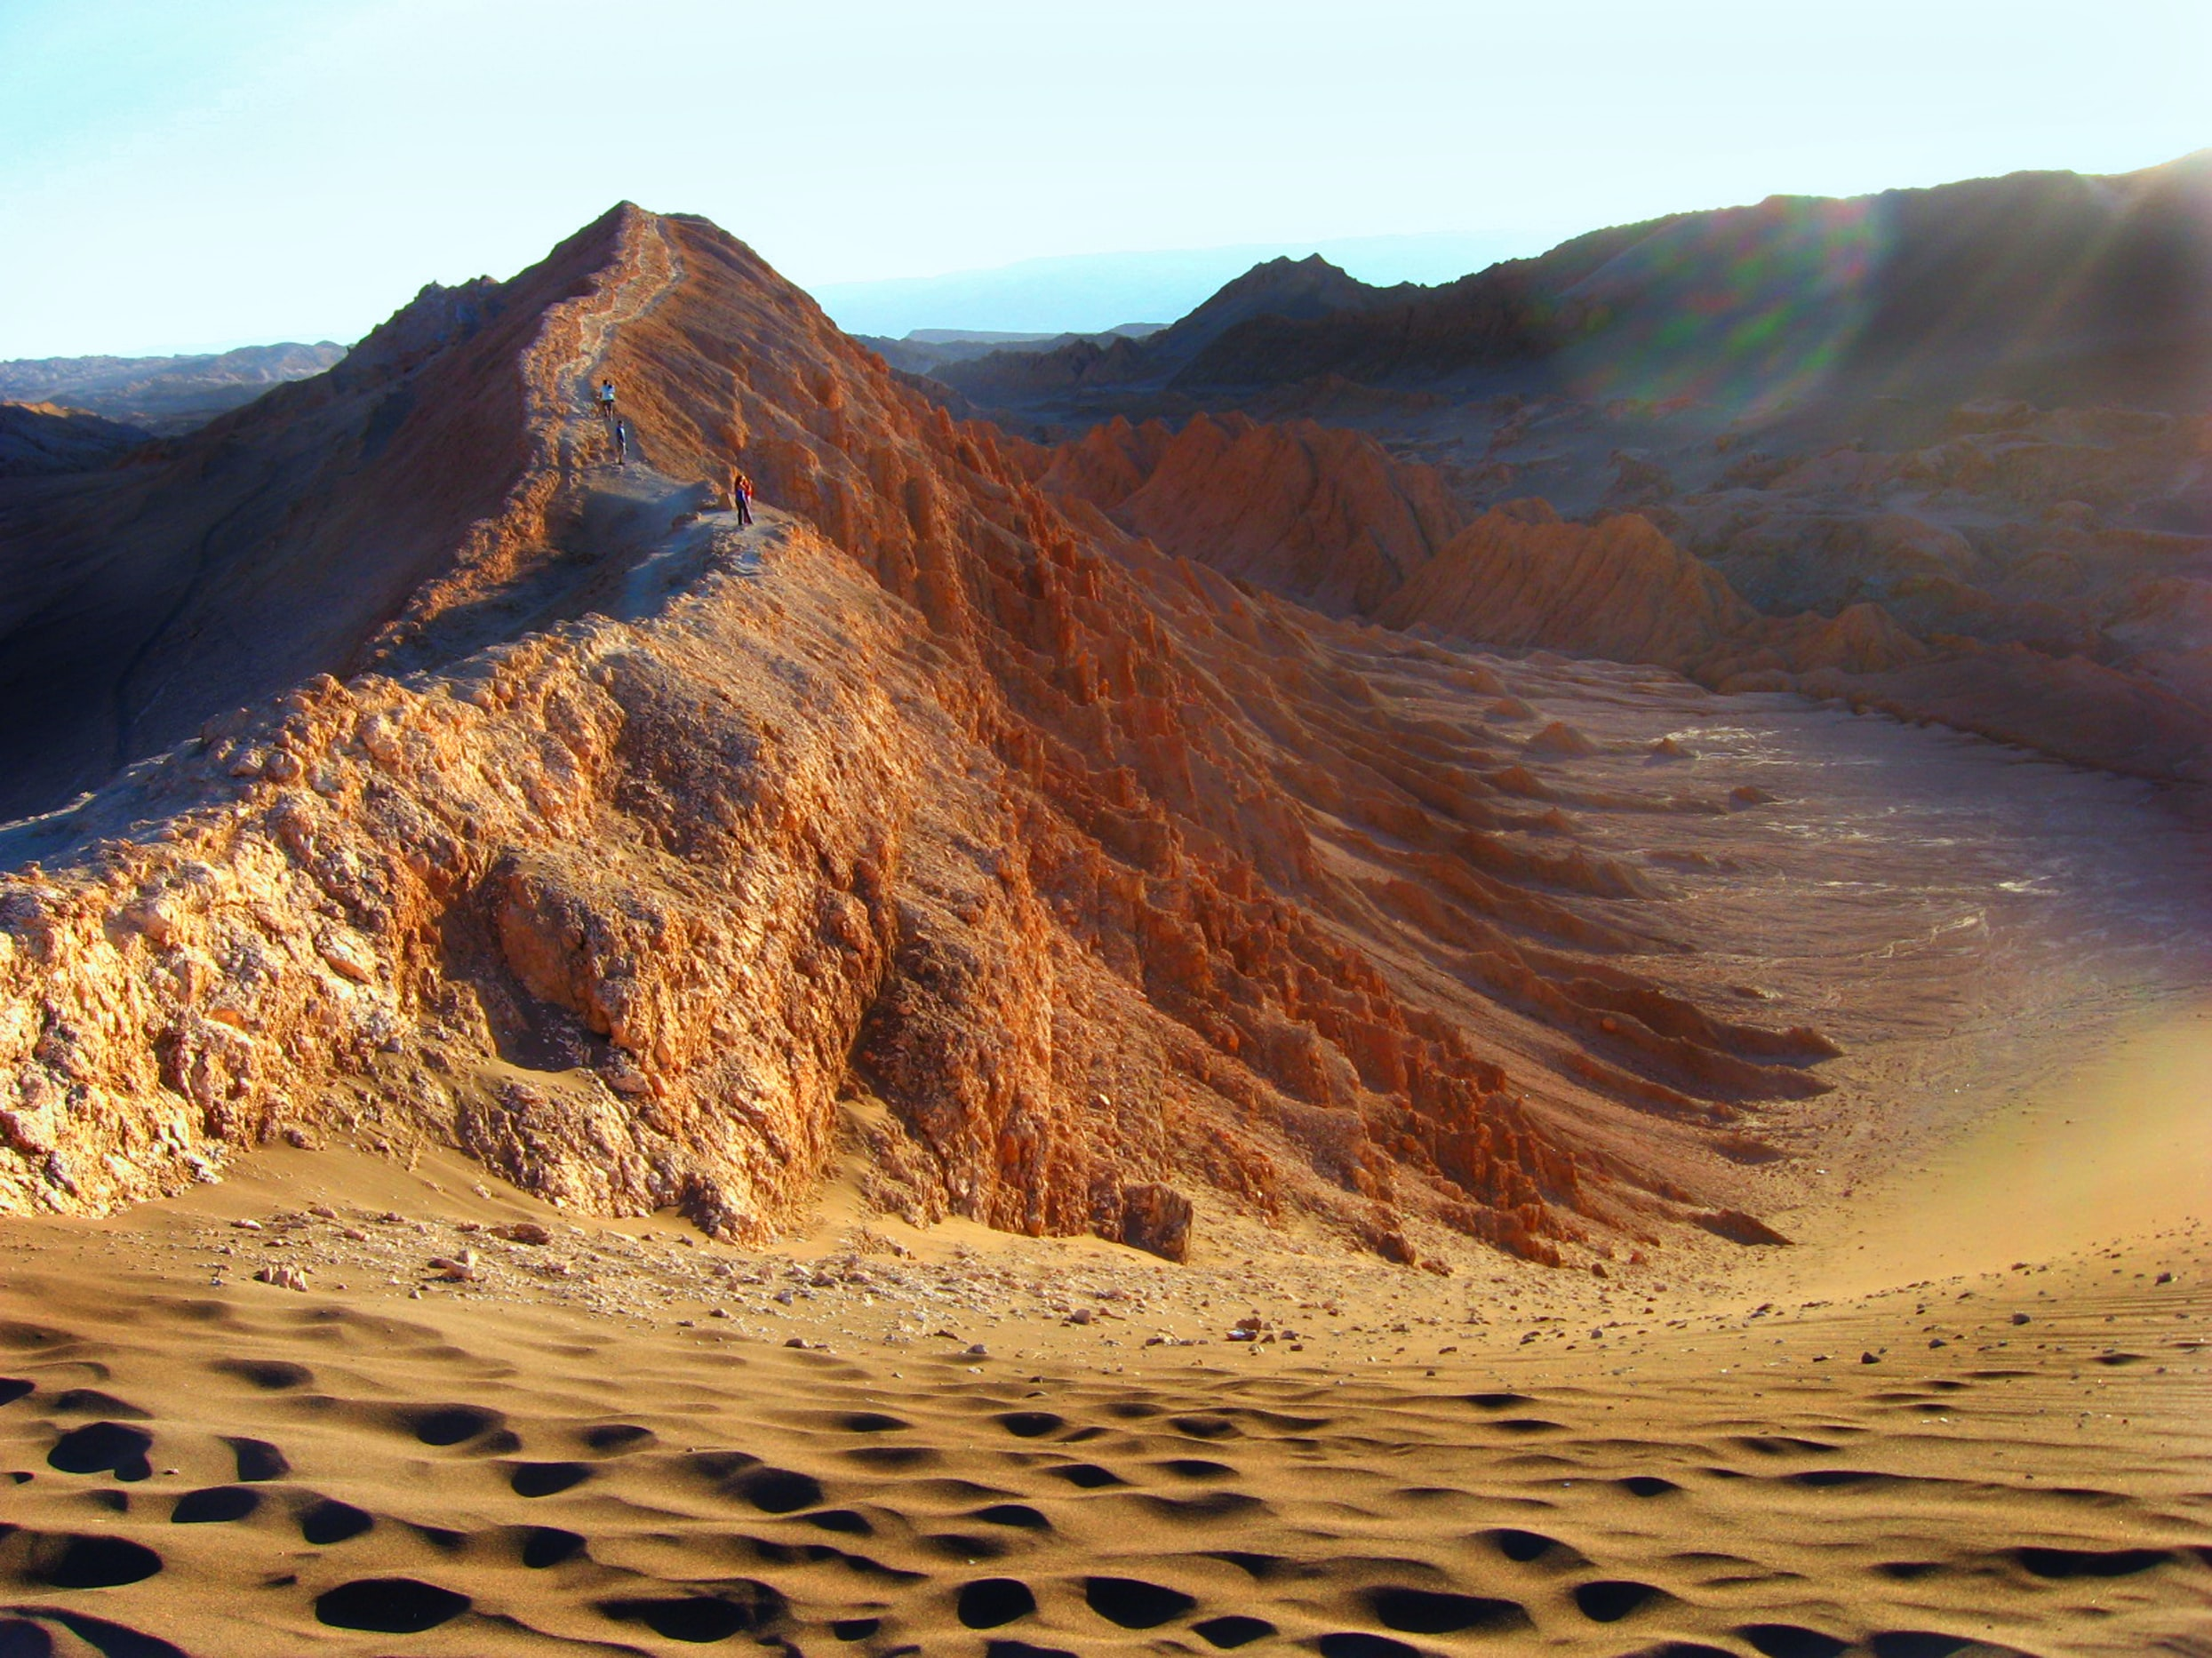 Hikers walk along sand ridges in the desert of Valle De La Luna